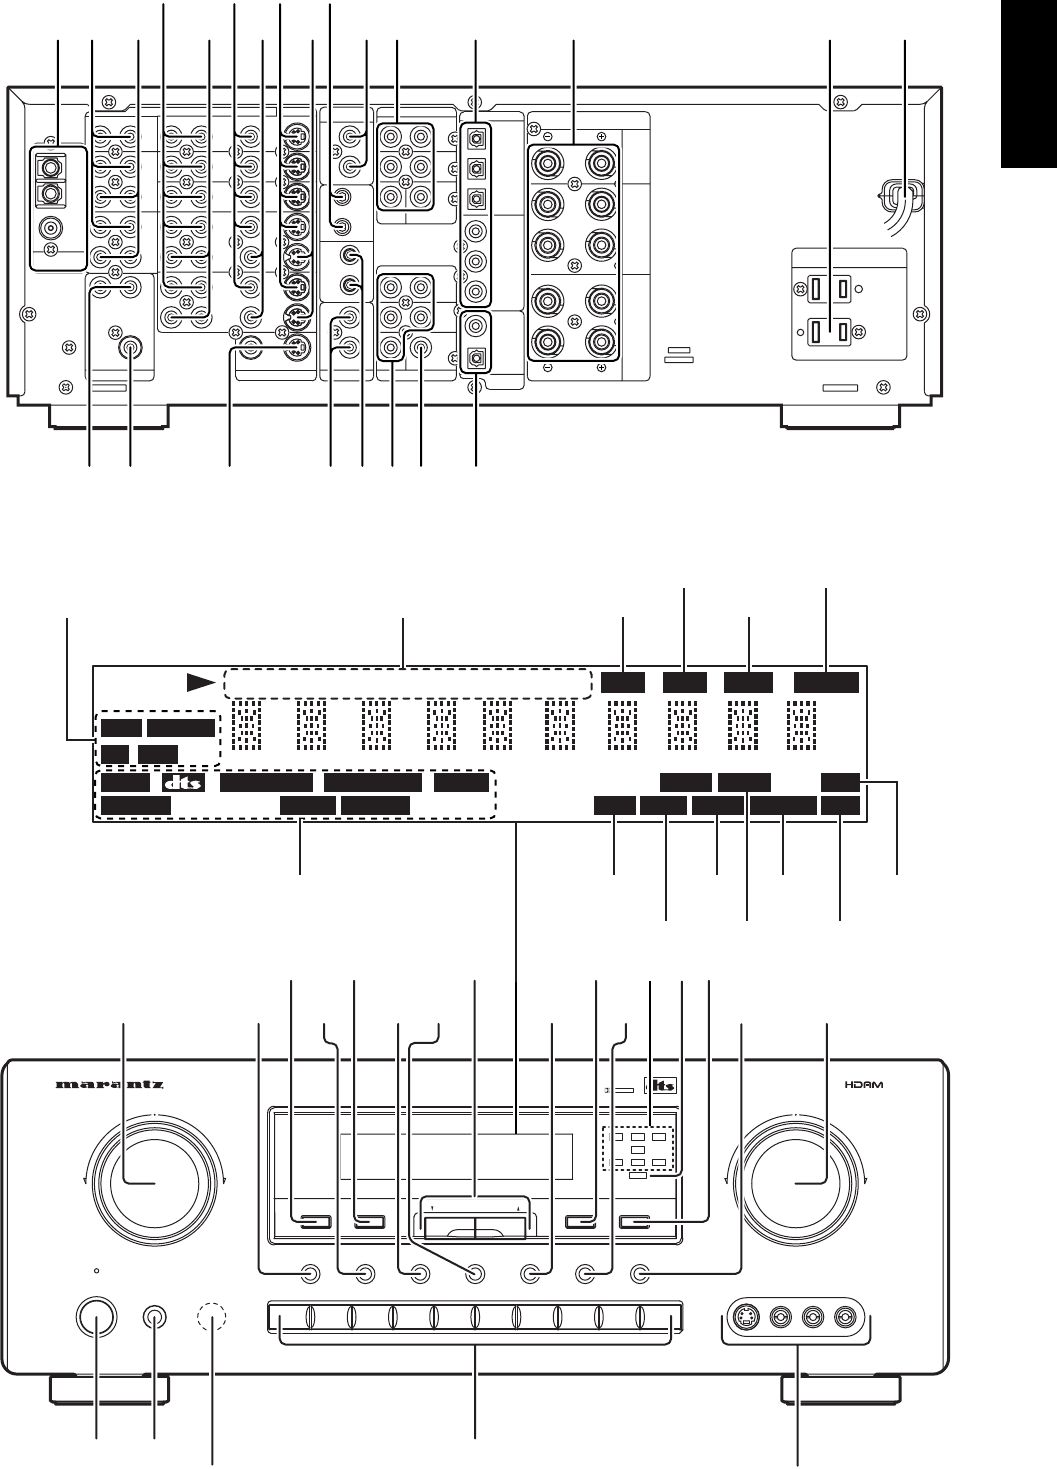 Page 5 of Marantz Stereo Receiver SR8000 User Guide